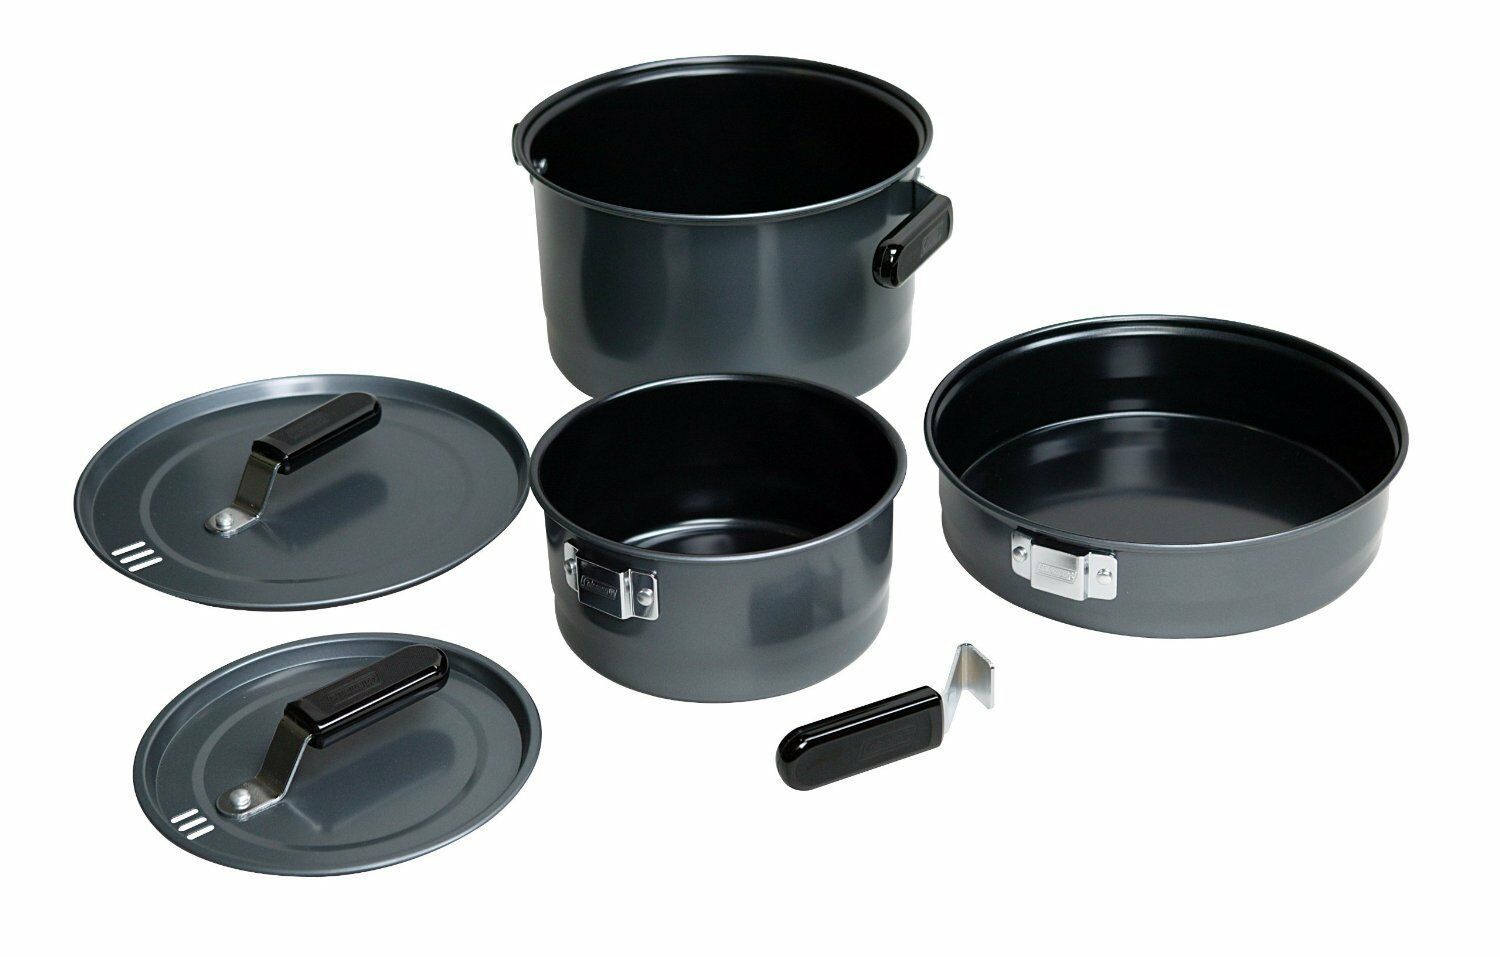 Coleman 6 piece Family Cook Set cooking supplies cookware